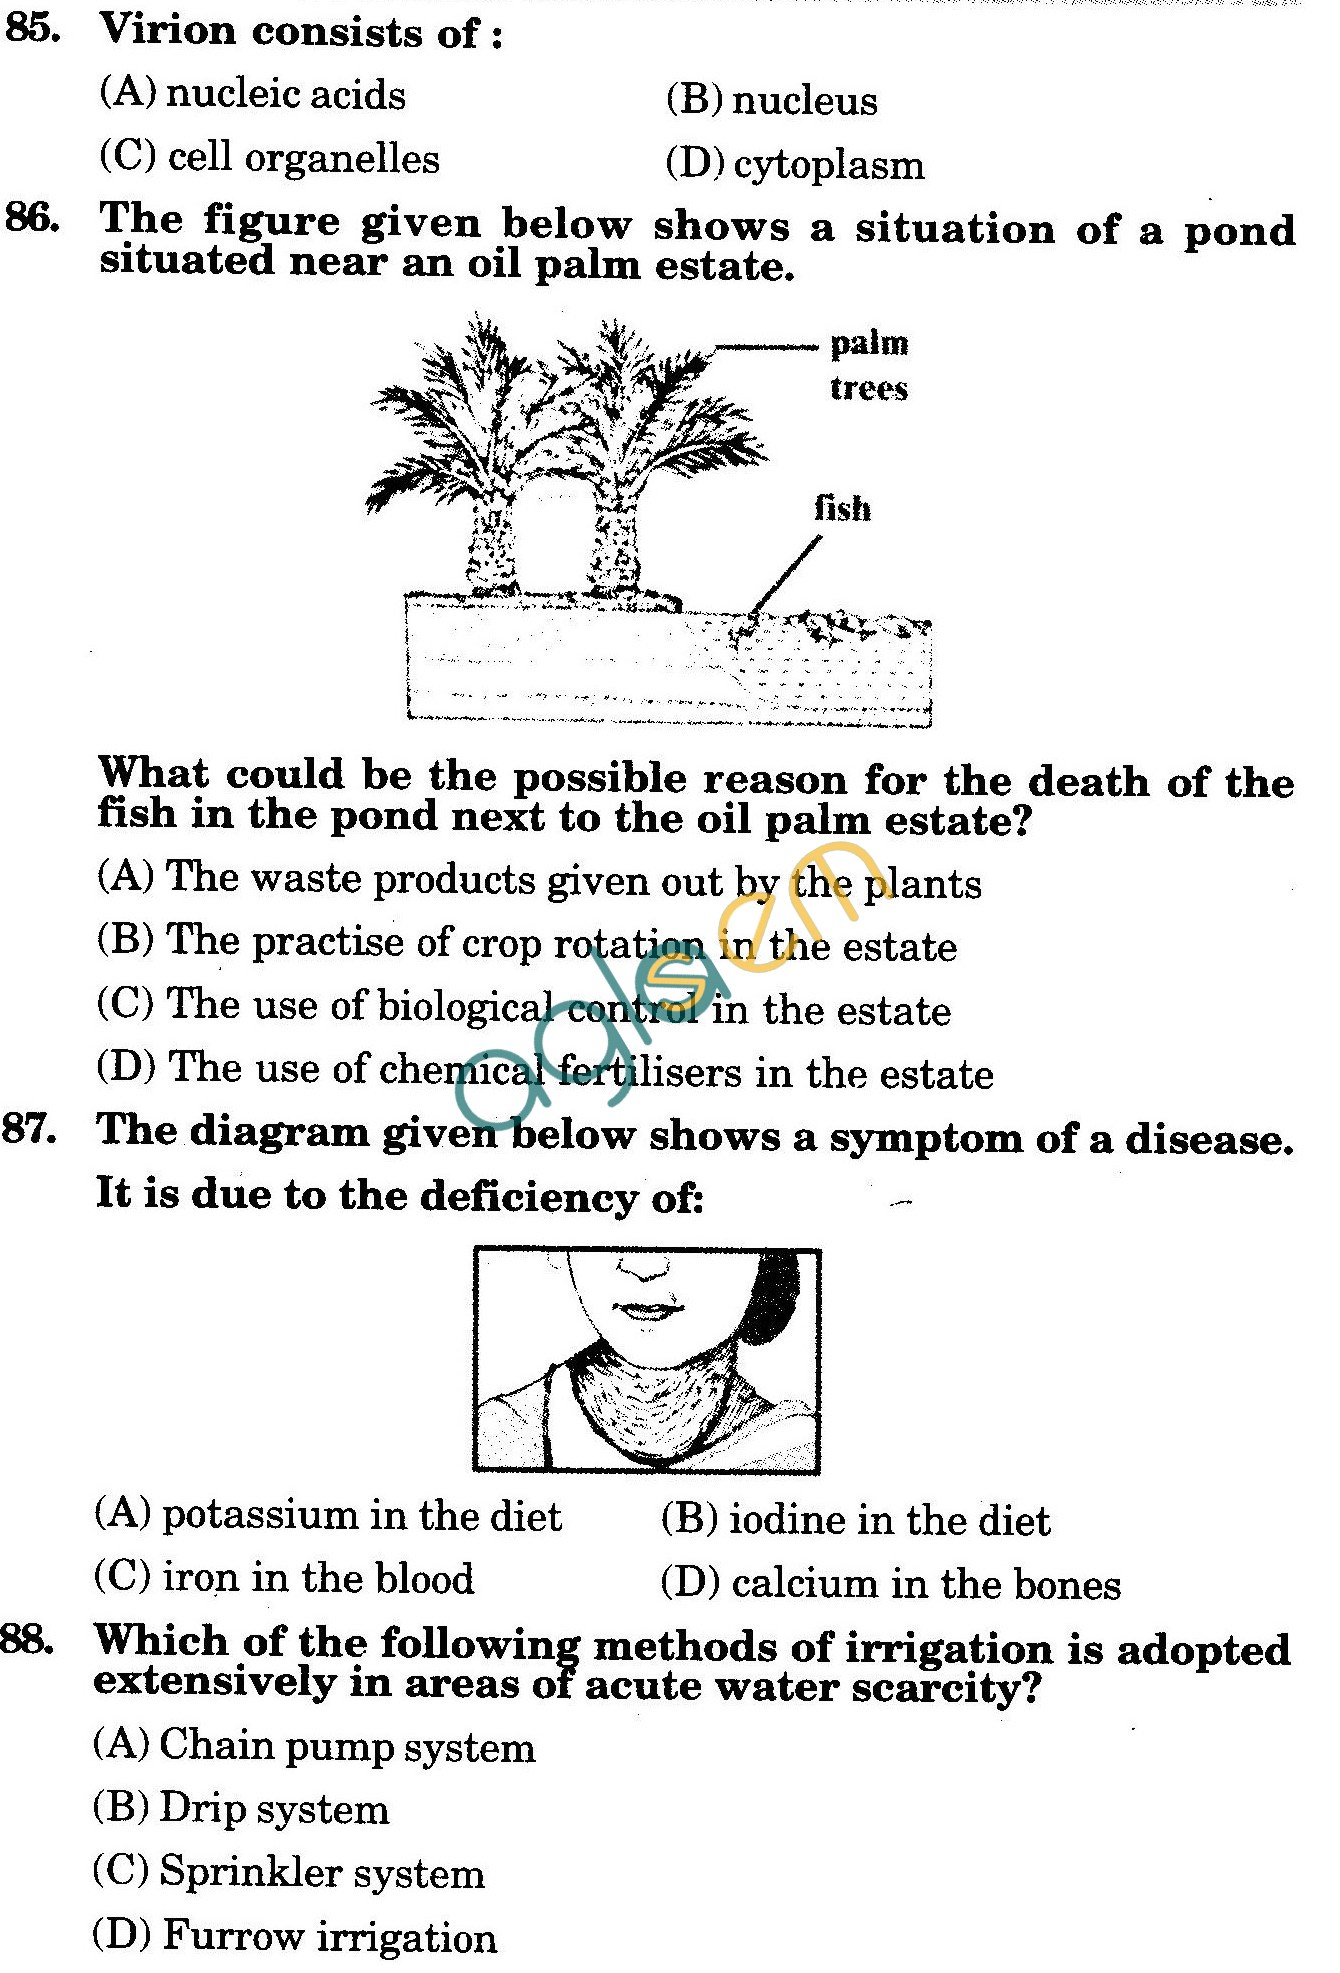 NSTSE 2010: Class VIII Question Paper with Answers - Biology